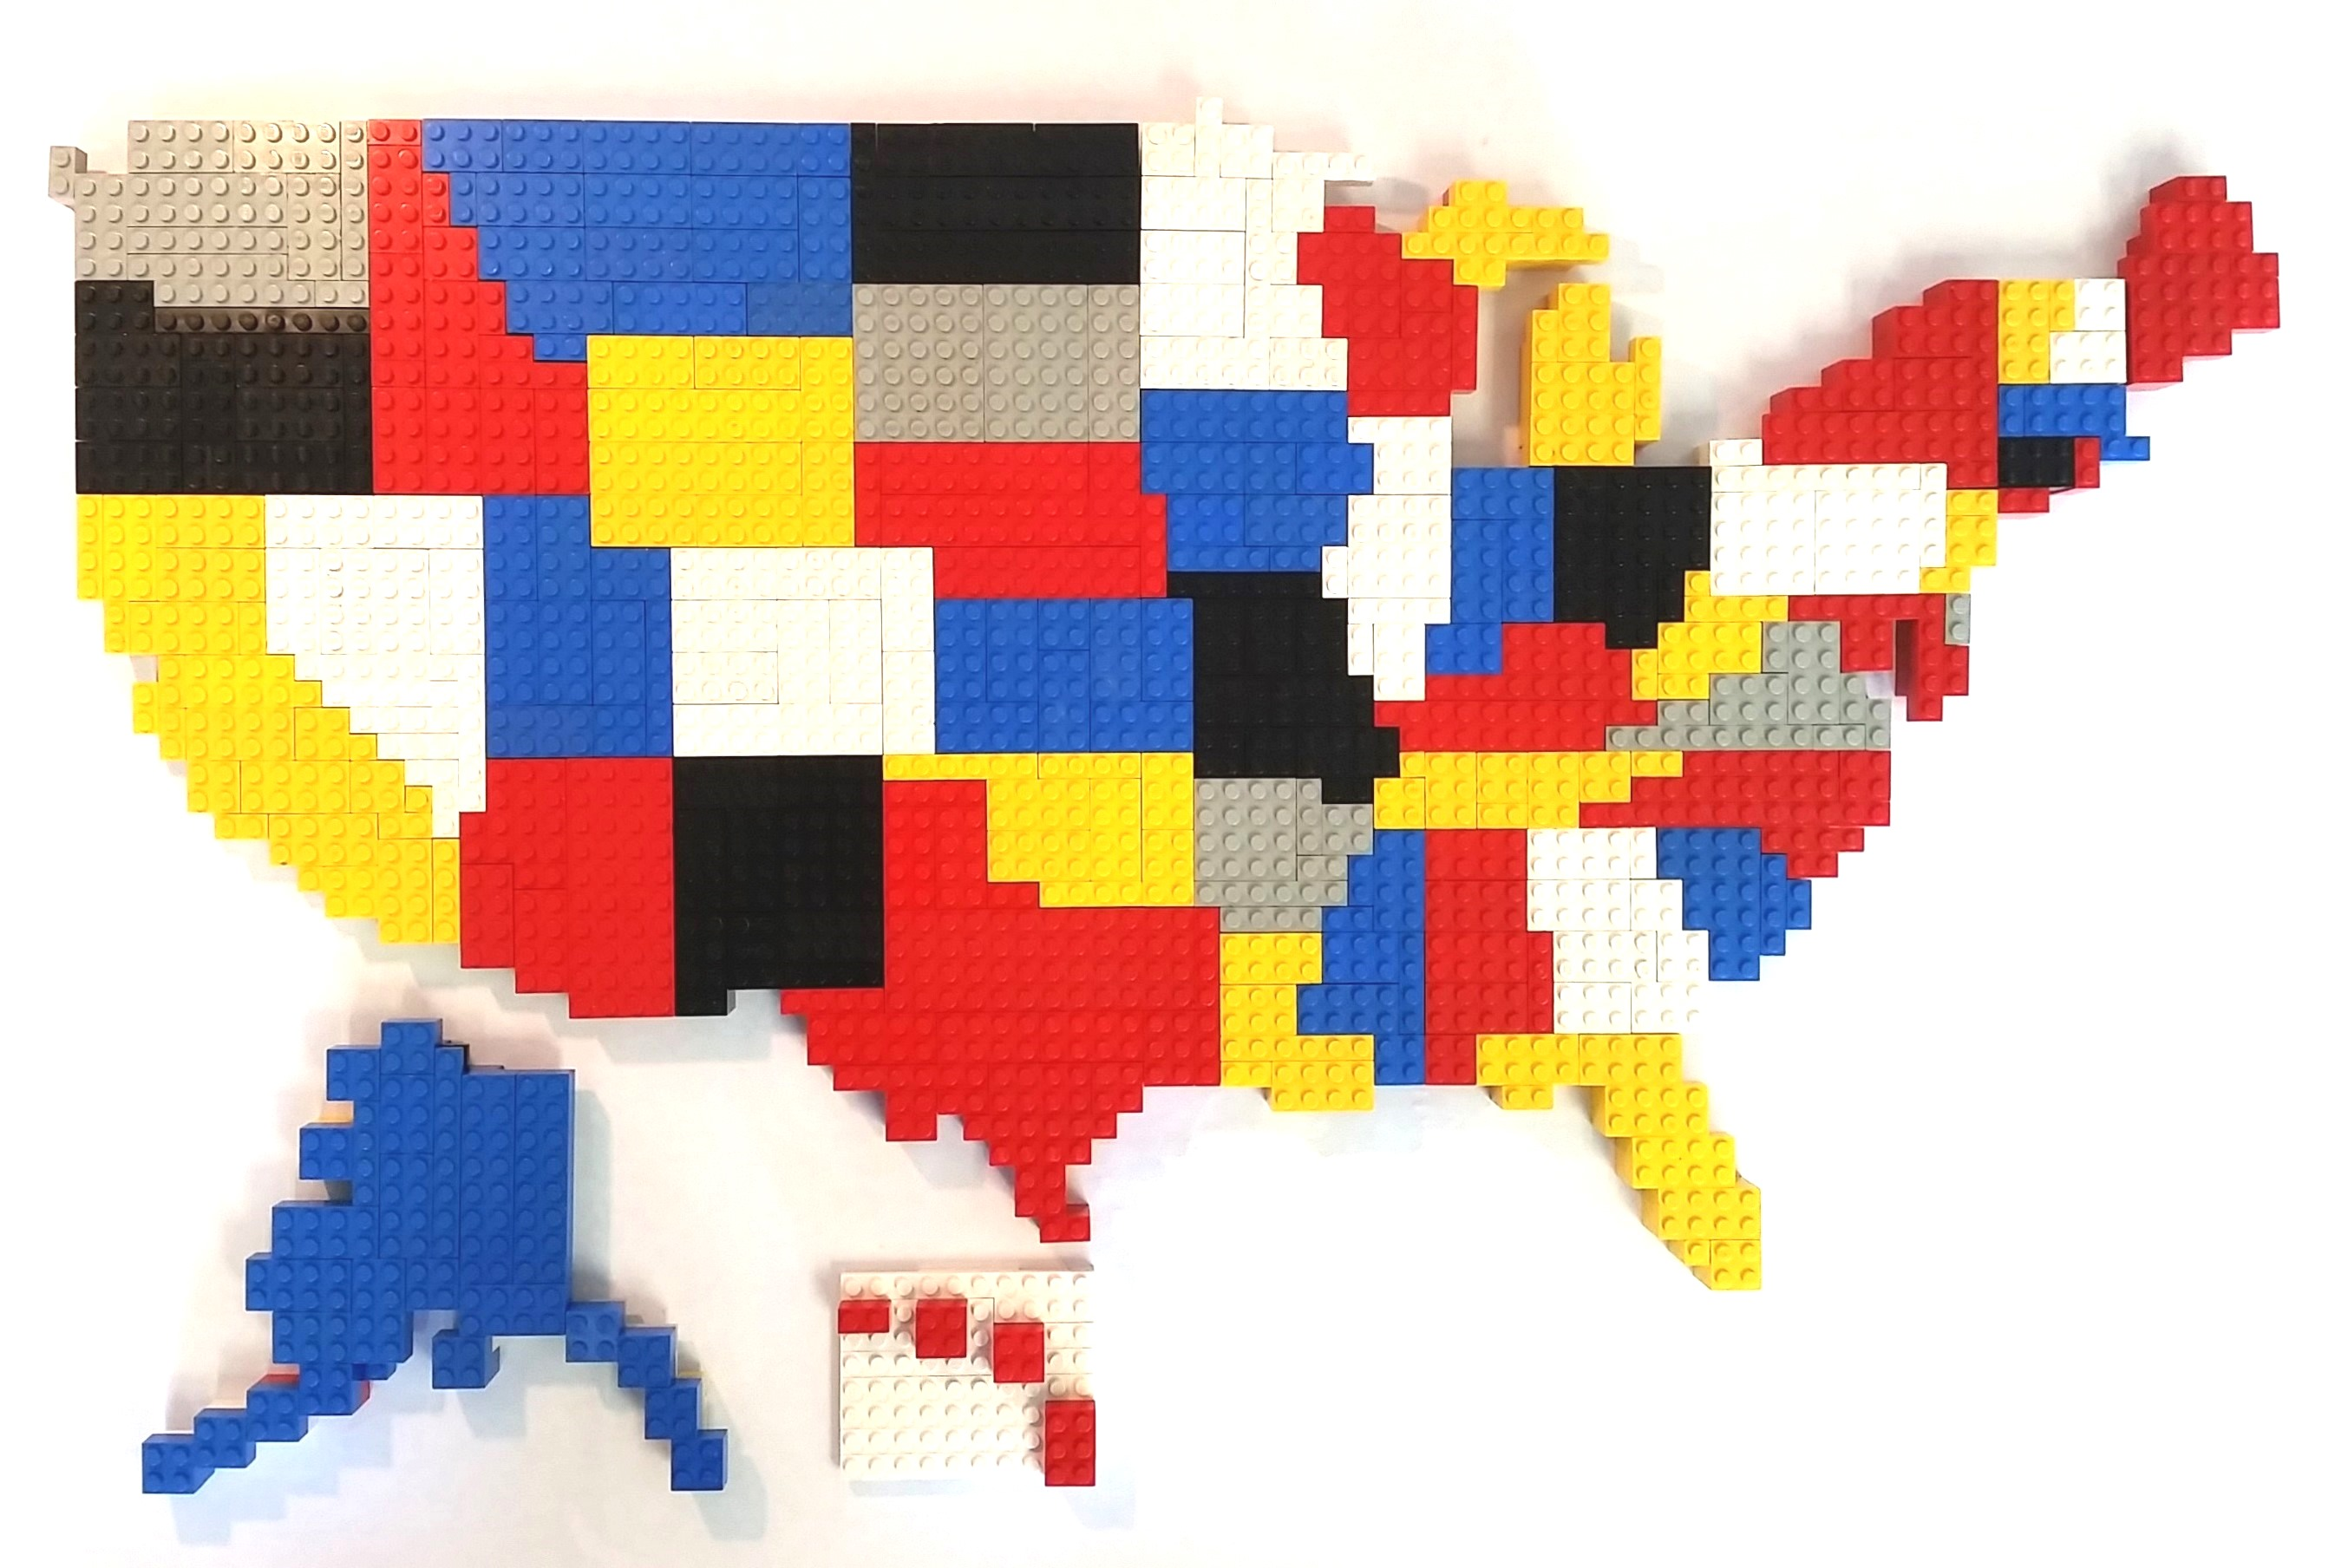 lego_map_united_states_sowby_2016